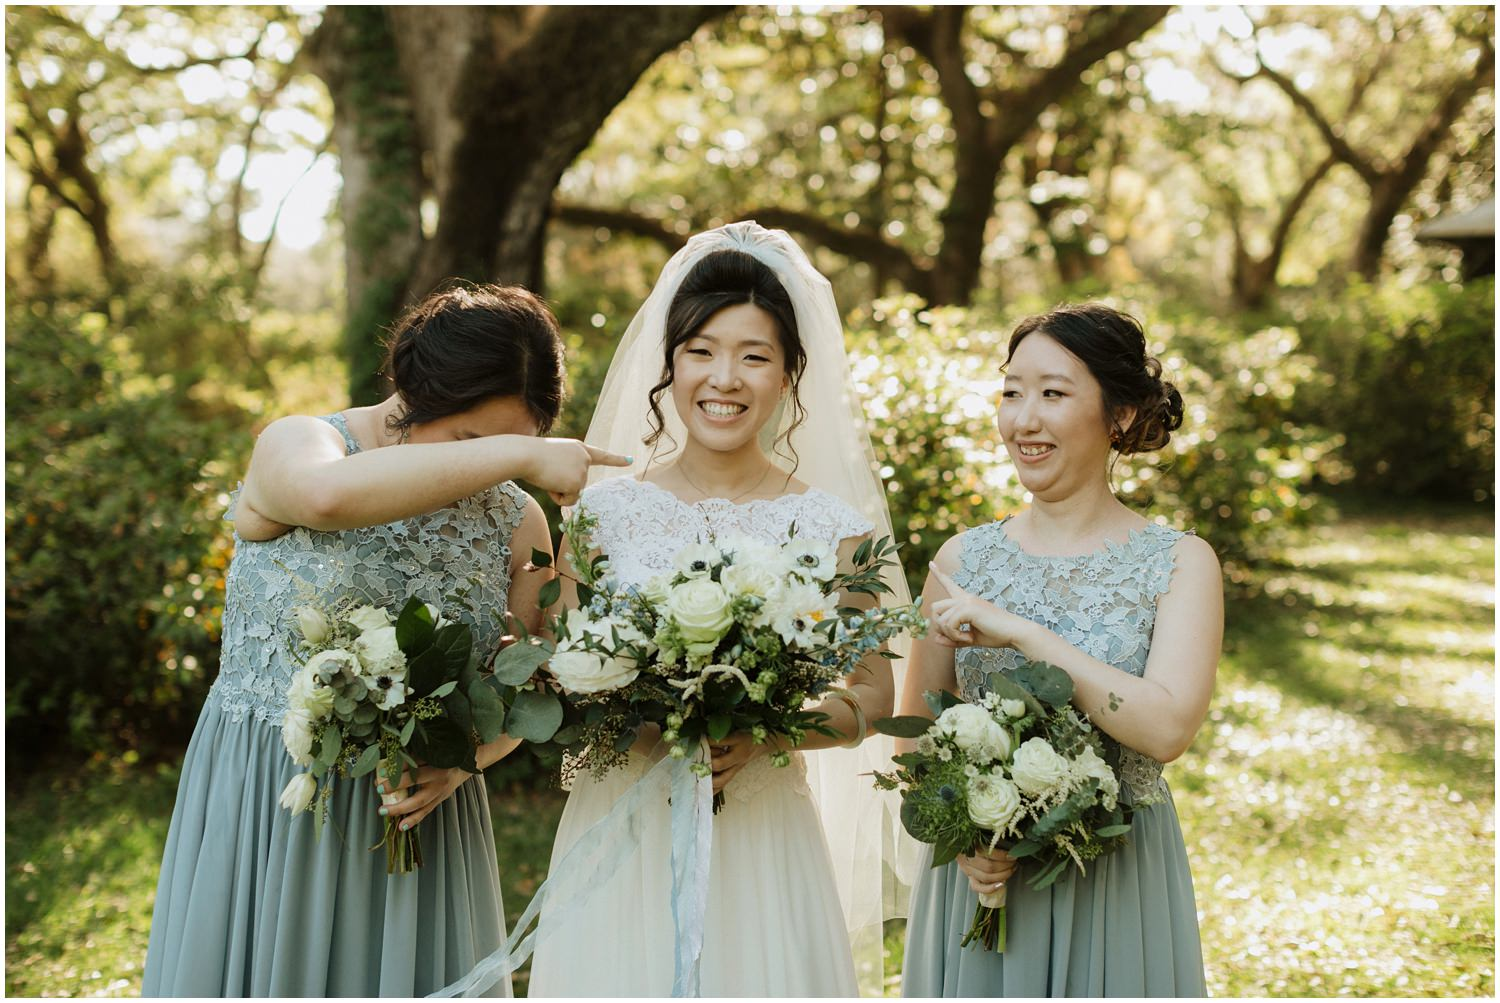 Bridesmaids Eden Gardens Wedding